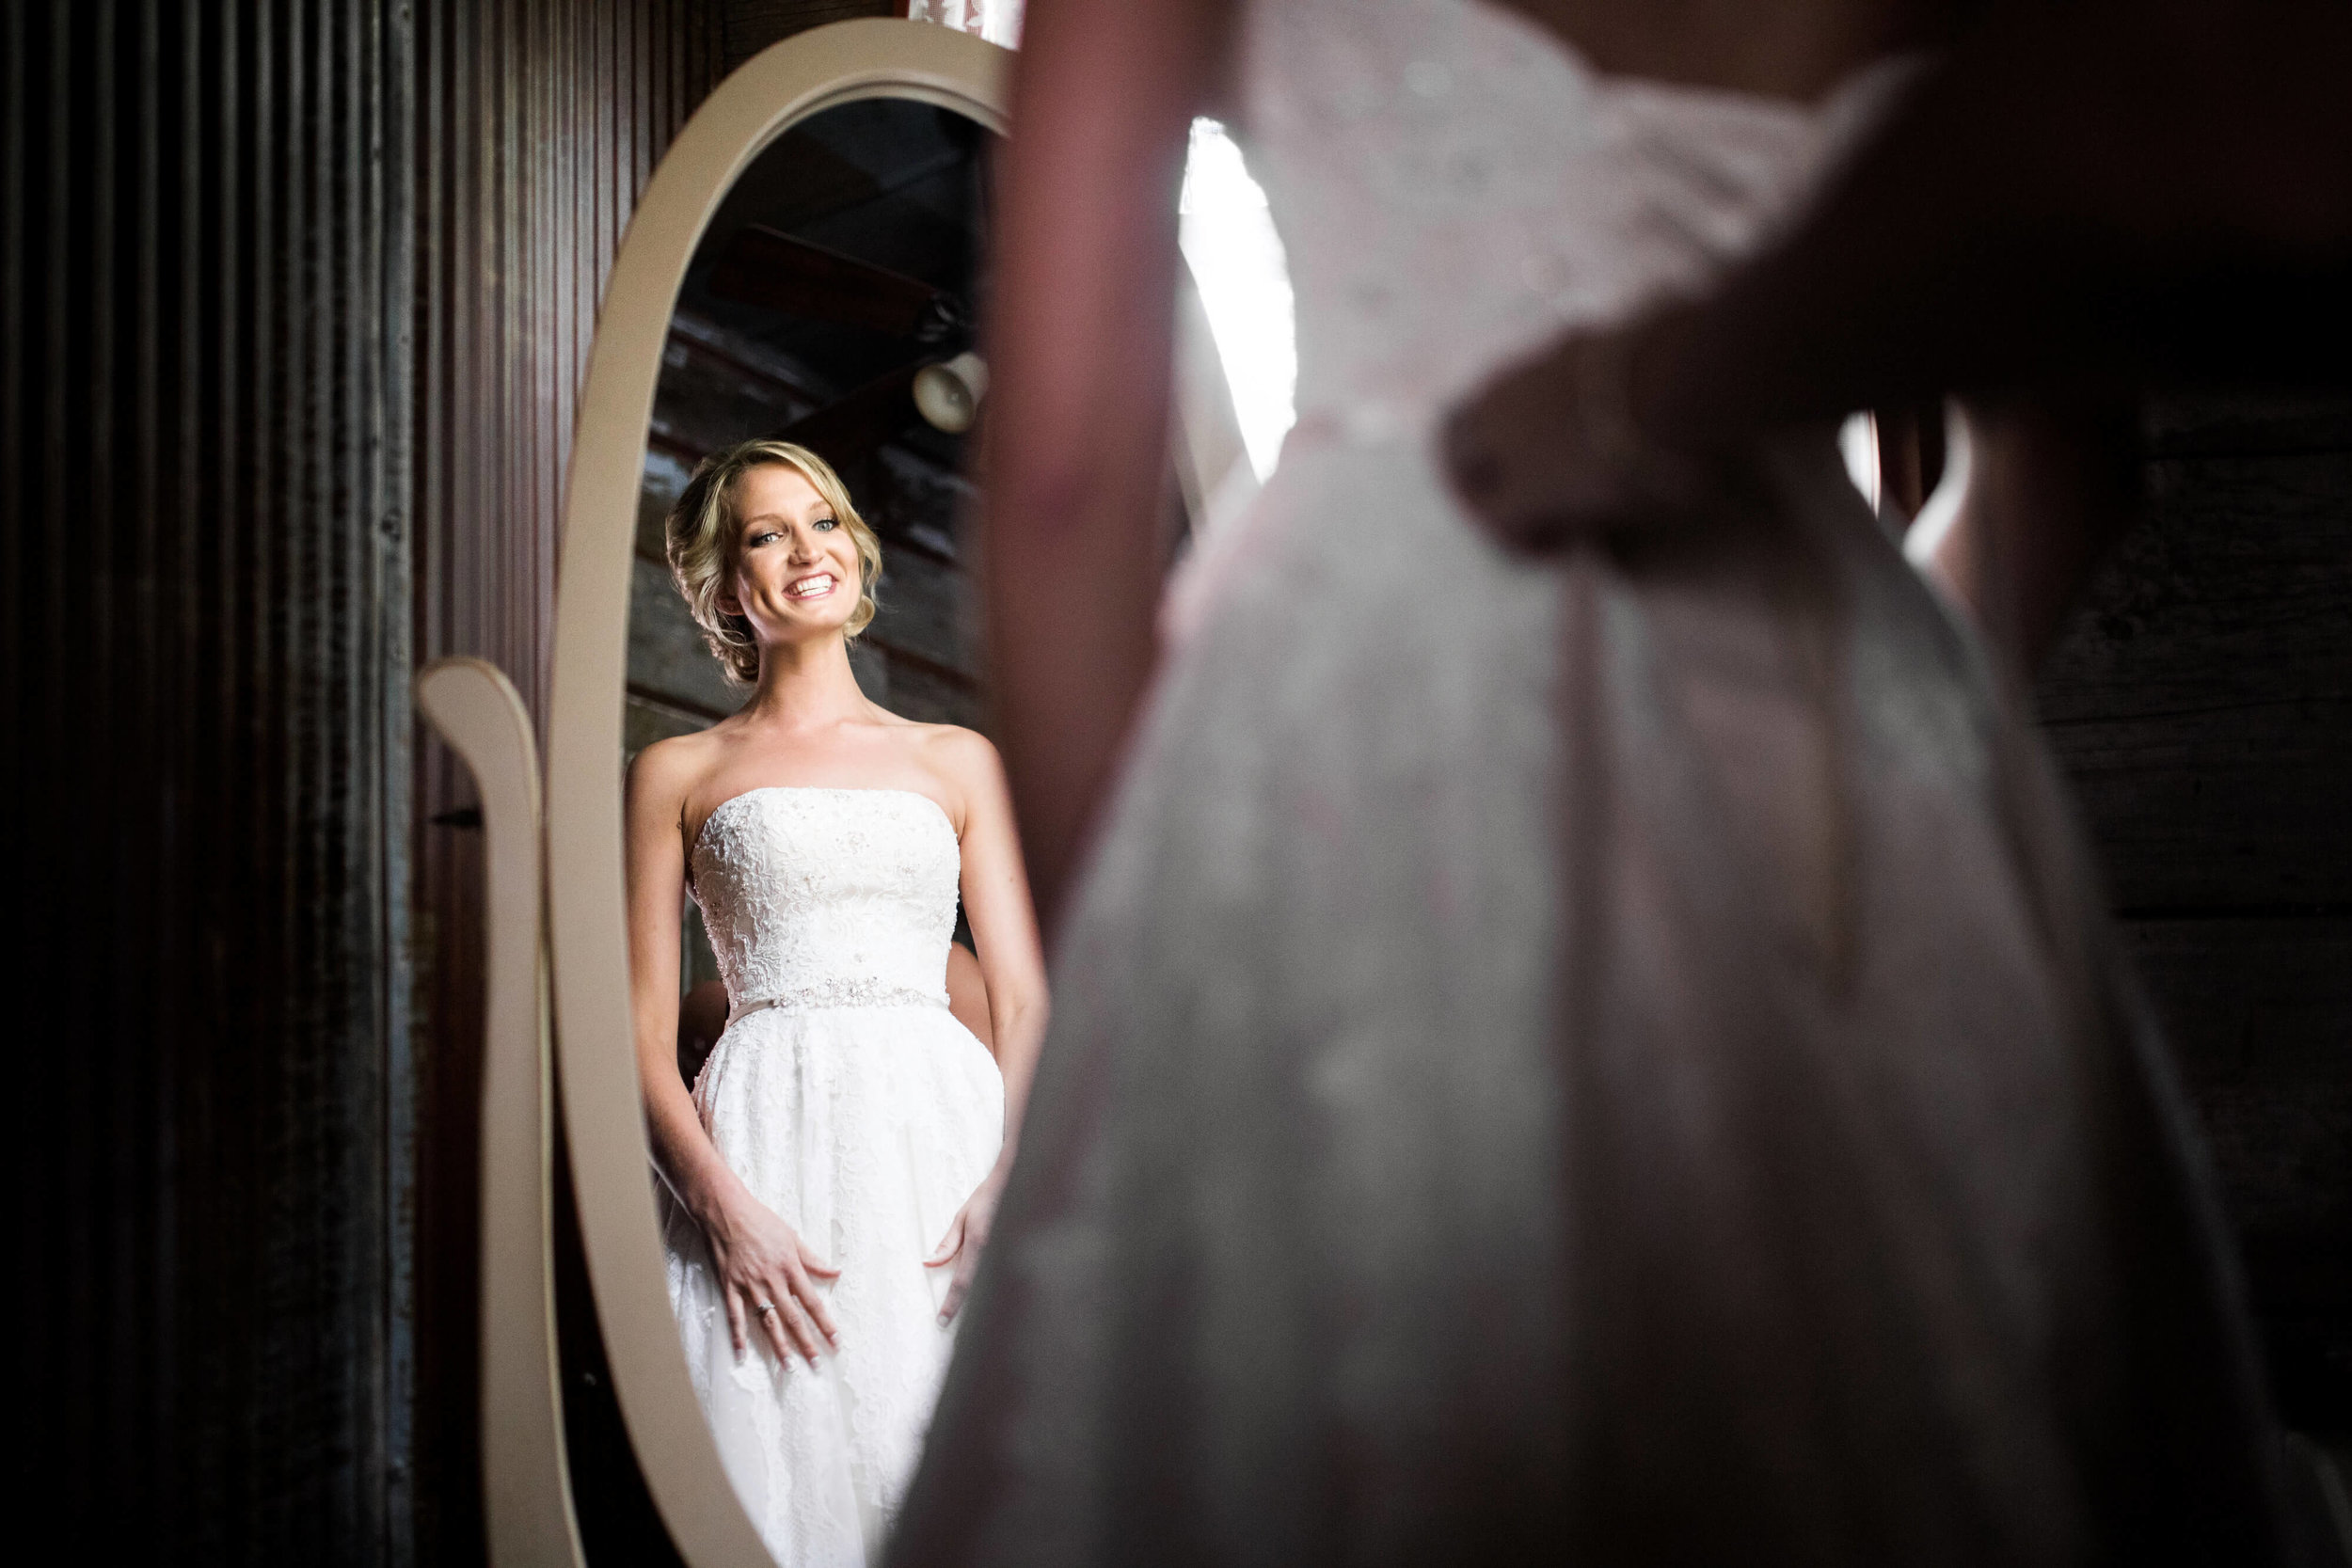 Studio KH wedding photographer | Sixpence Events and Planning, free wedding blog, free wedding help, free wedding advice | bride looking at herself in the mirror